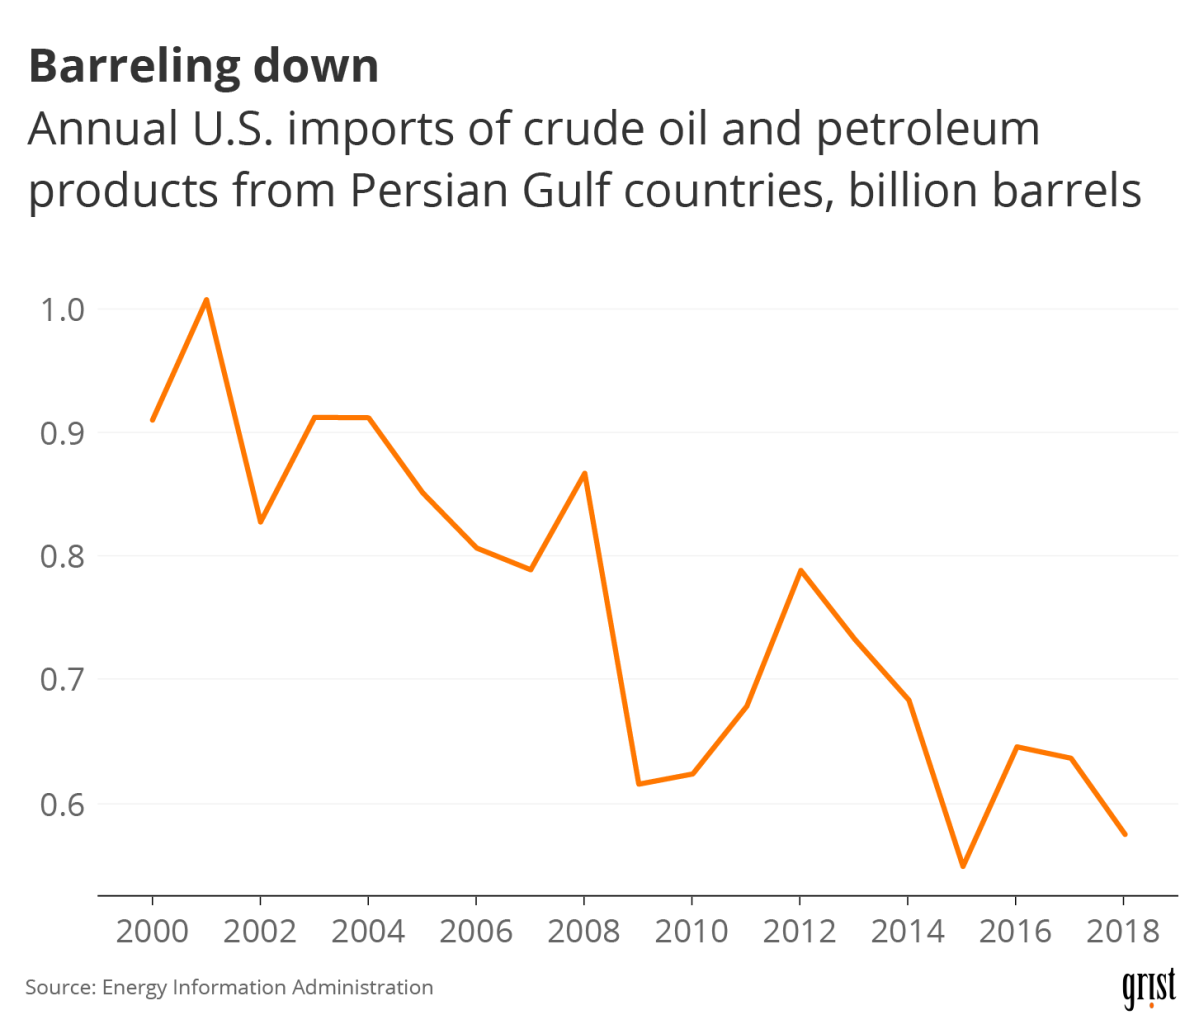 A line chart showing decreasing U.S. imports of oil from Persian Gulf countries between 2000 and 2018.